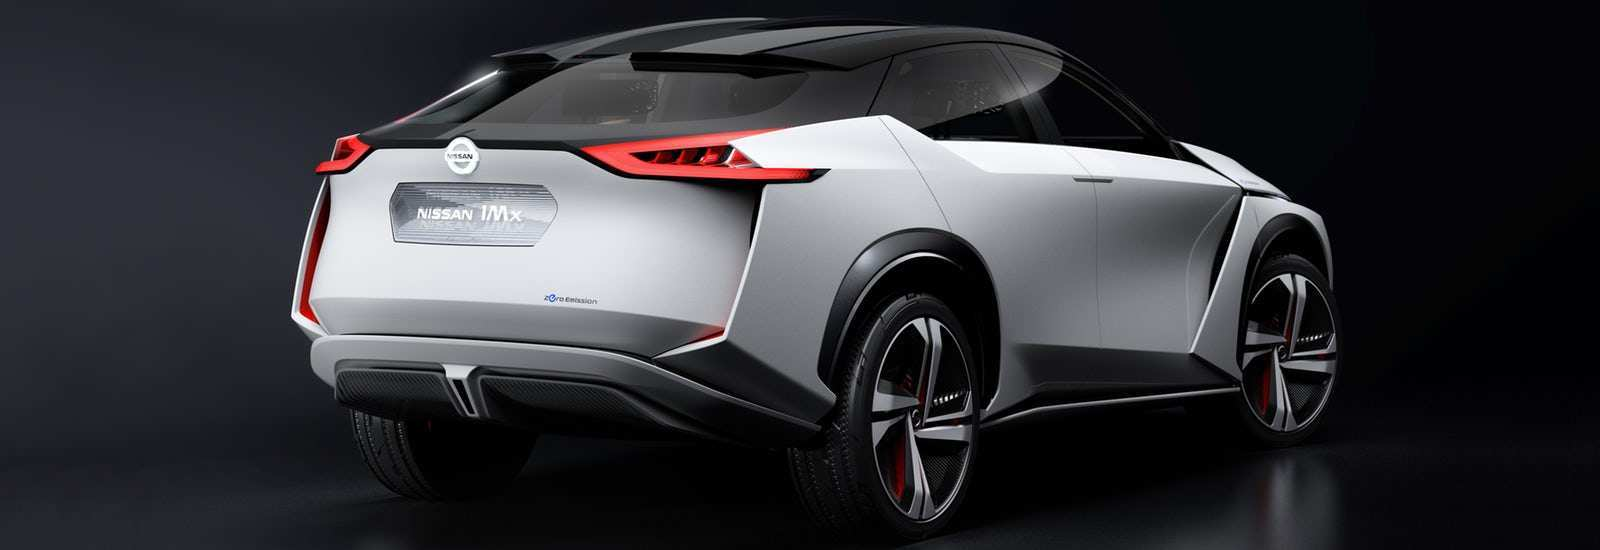 54 New Nissan 2020 Electric Car Price and Review for Nissan 2020 Electric Car